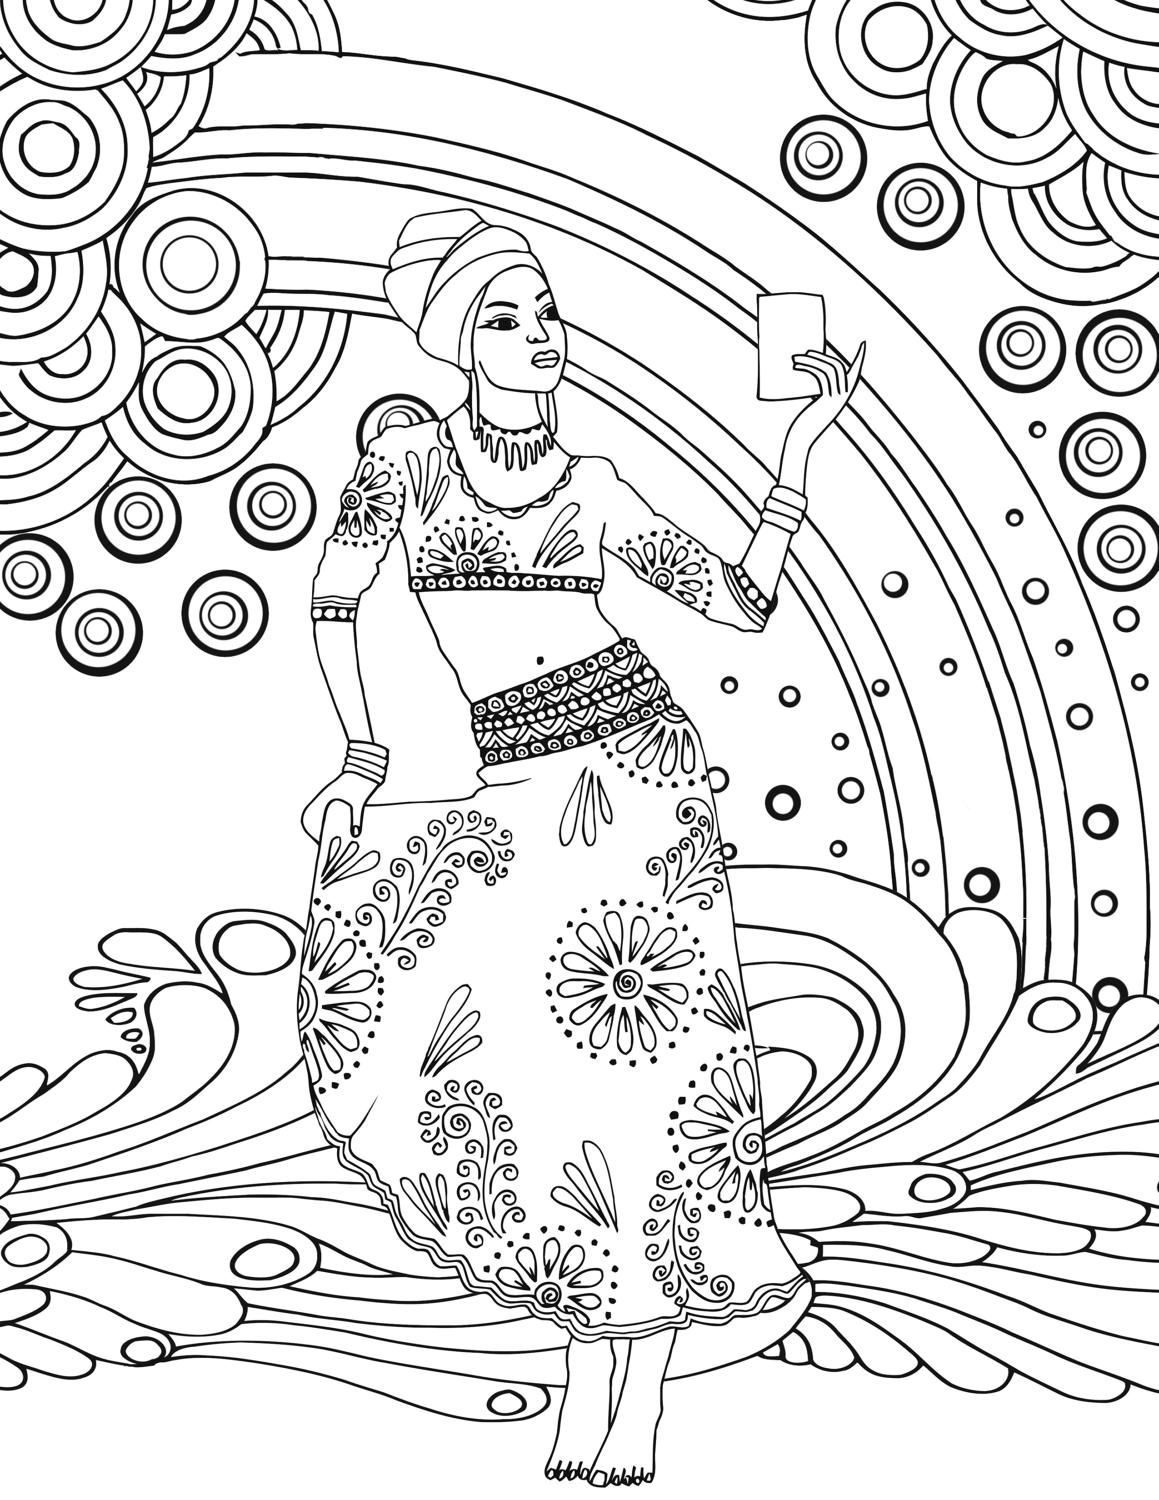 african art coloring pages - african goddess adult colouring page printable by